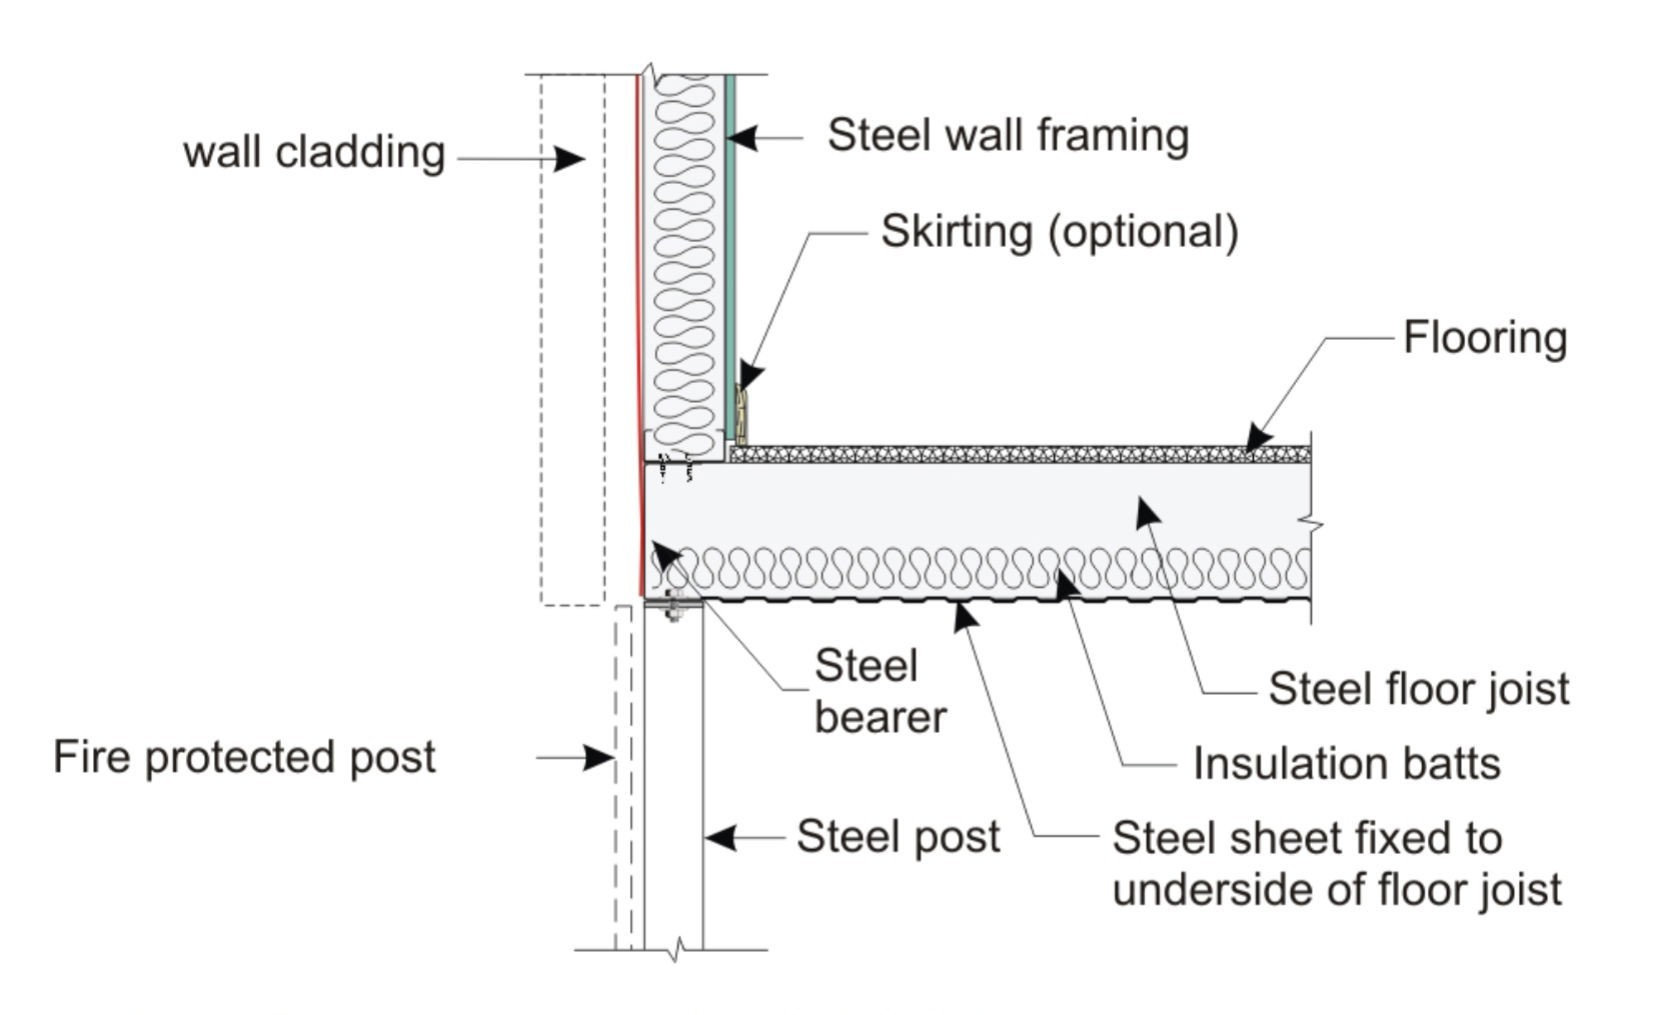 Section view of steel bearers and joists and fire protected post, unenclosed BAL-FZ flame zone classification.